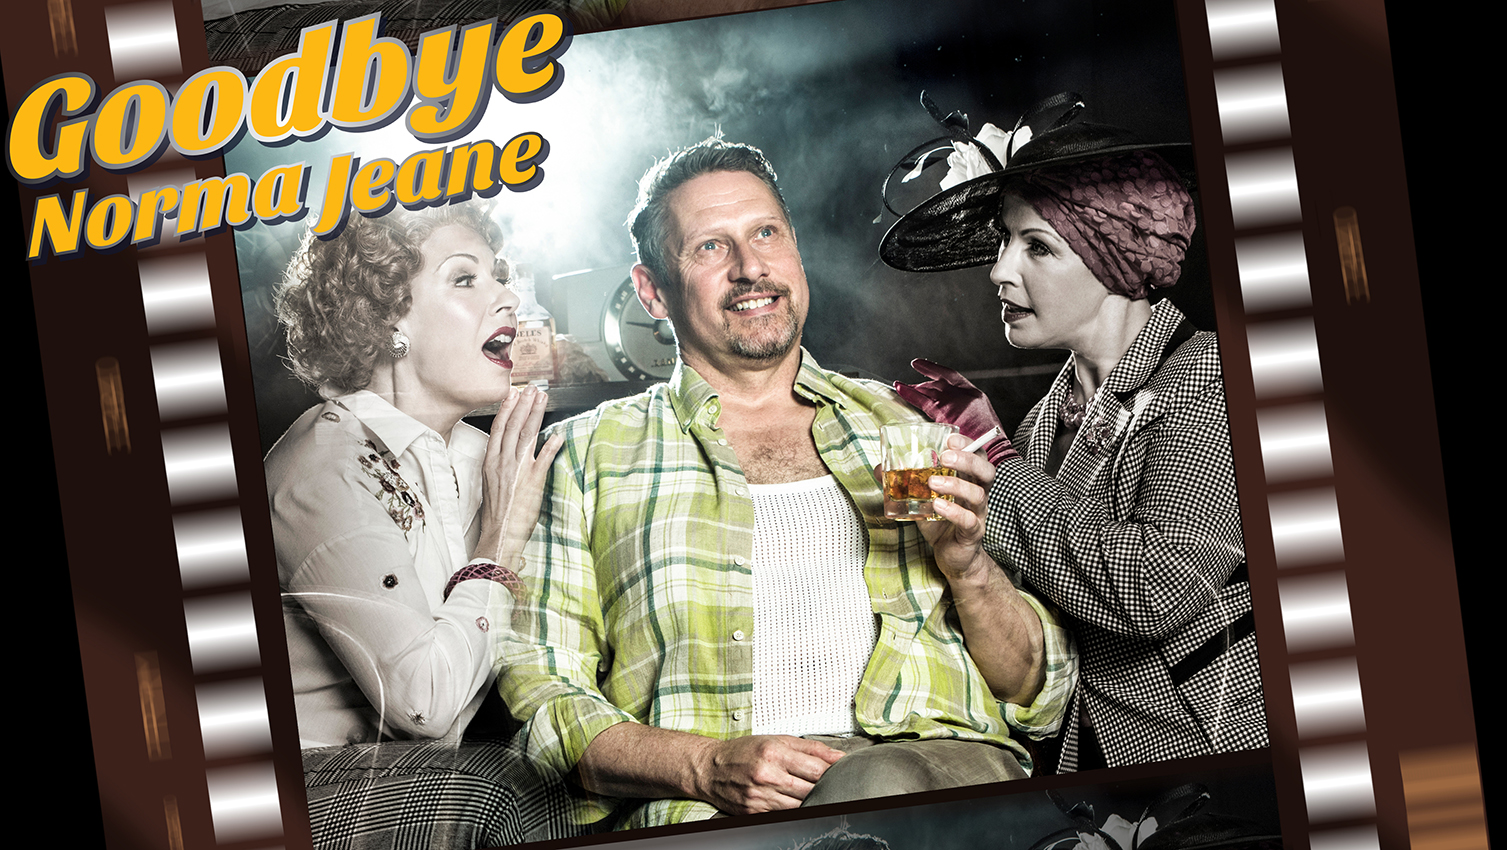 promo image for Goodbye Norma Jeane (ATS - production)